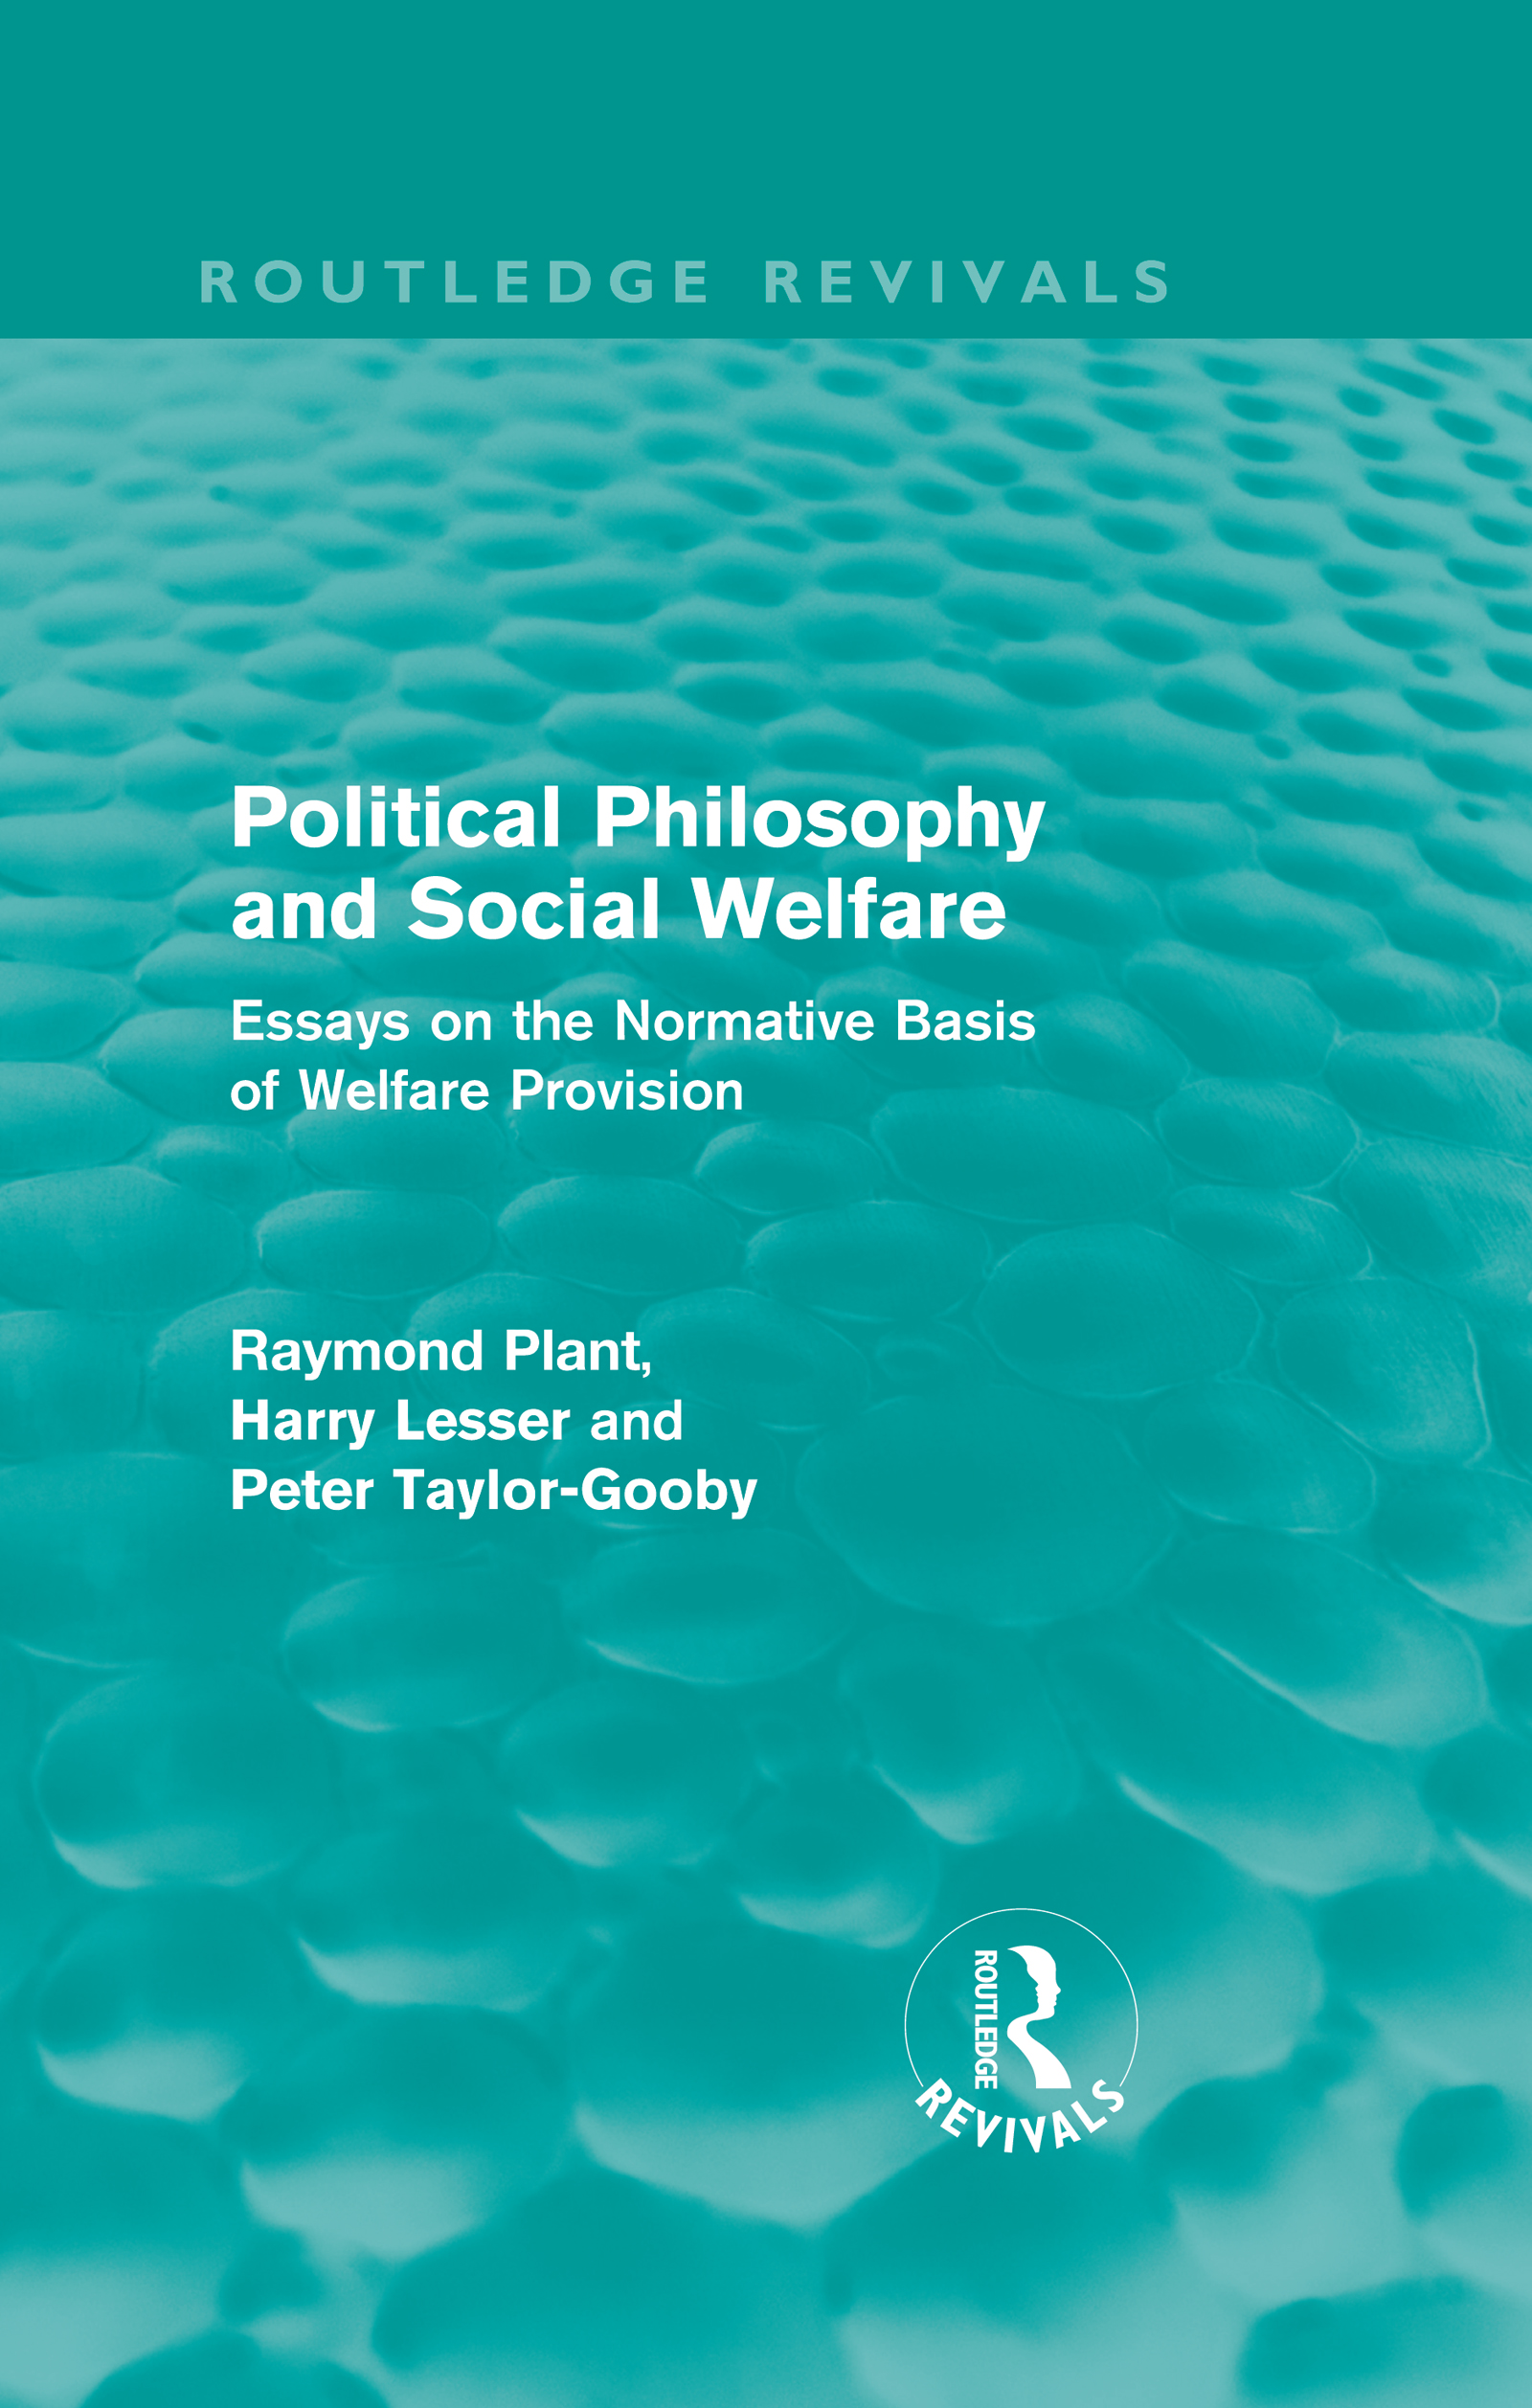 Political Philosophy and Social Welfare (Routledge Revivals): Essays on the Normative Basis of Welfare Provisions (Hardback) book cover